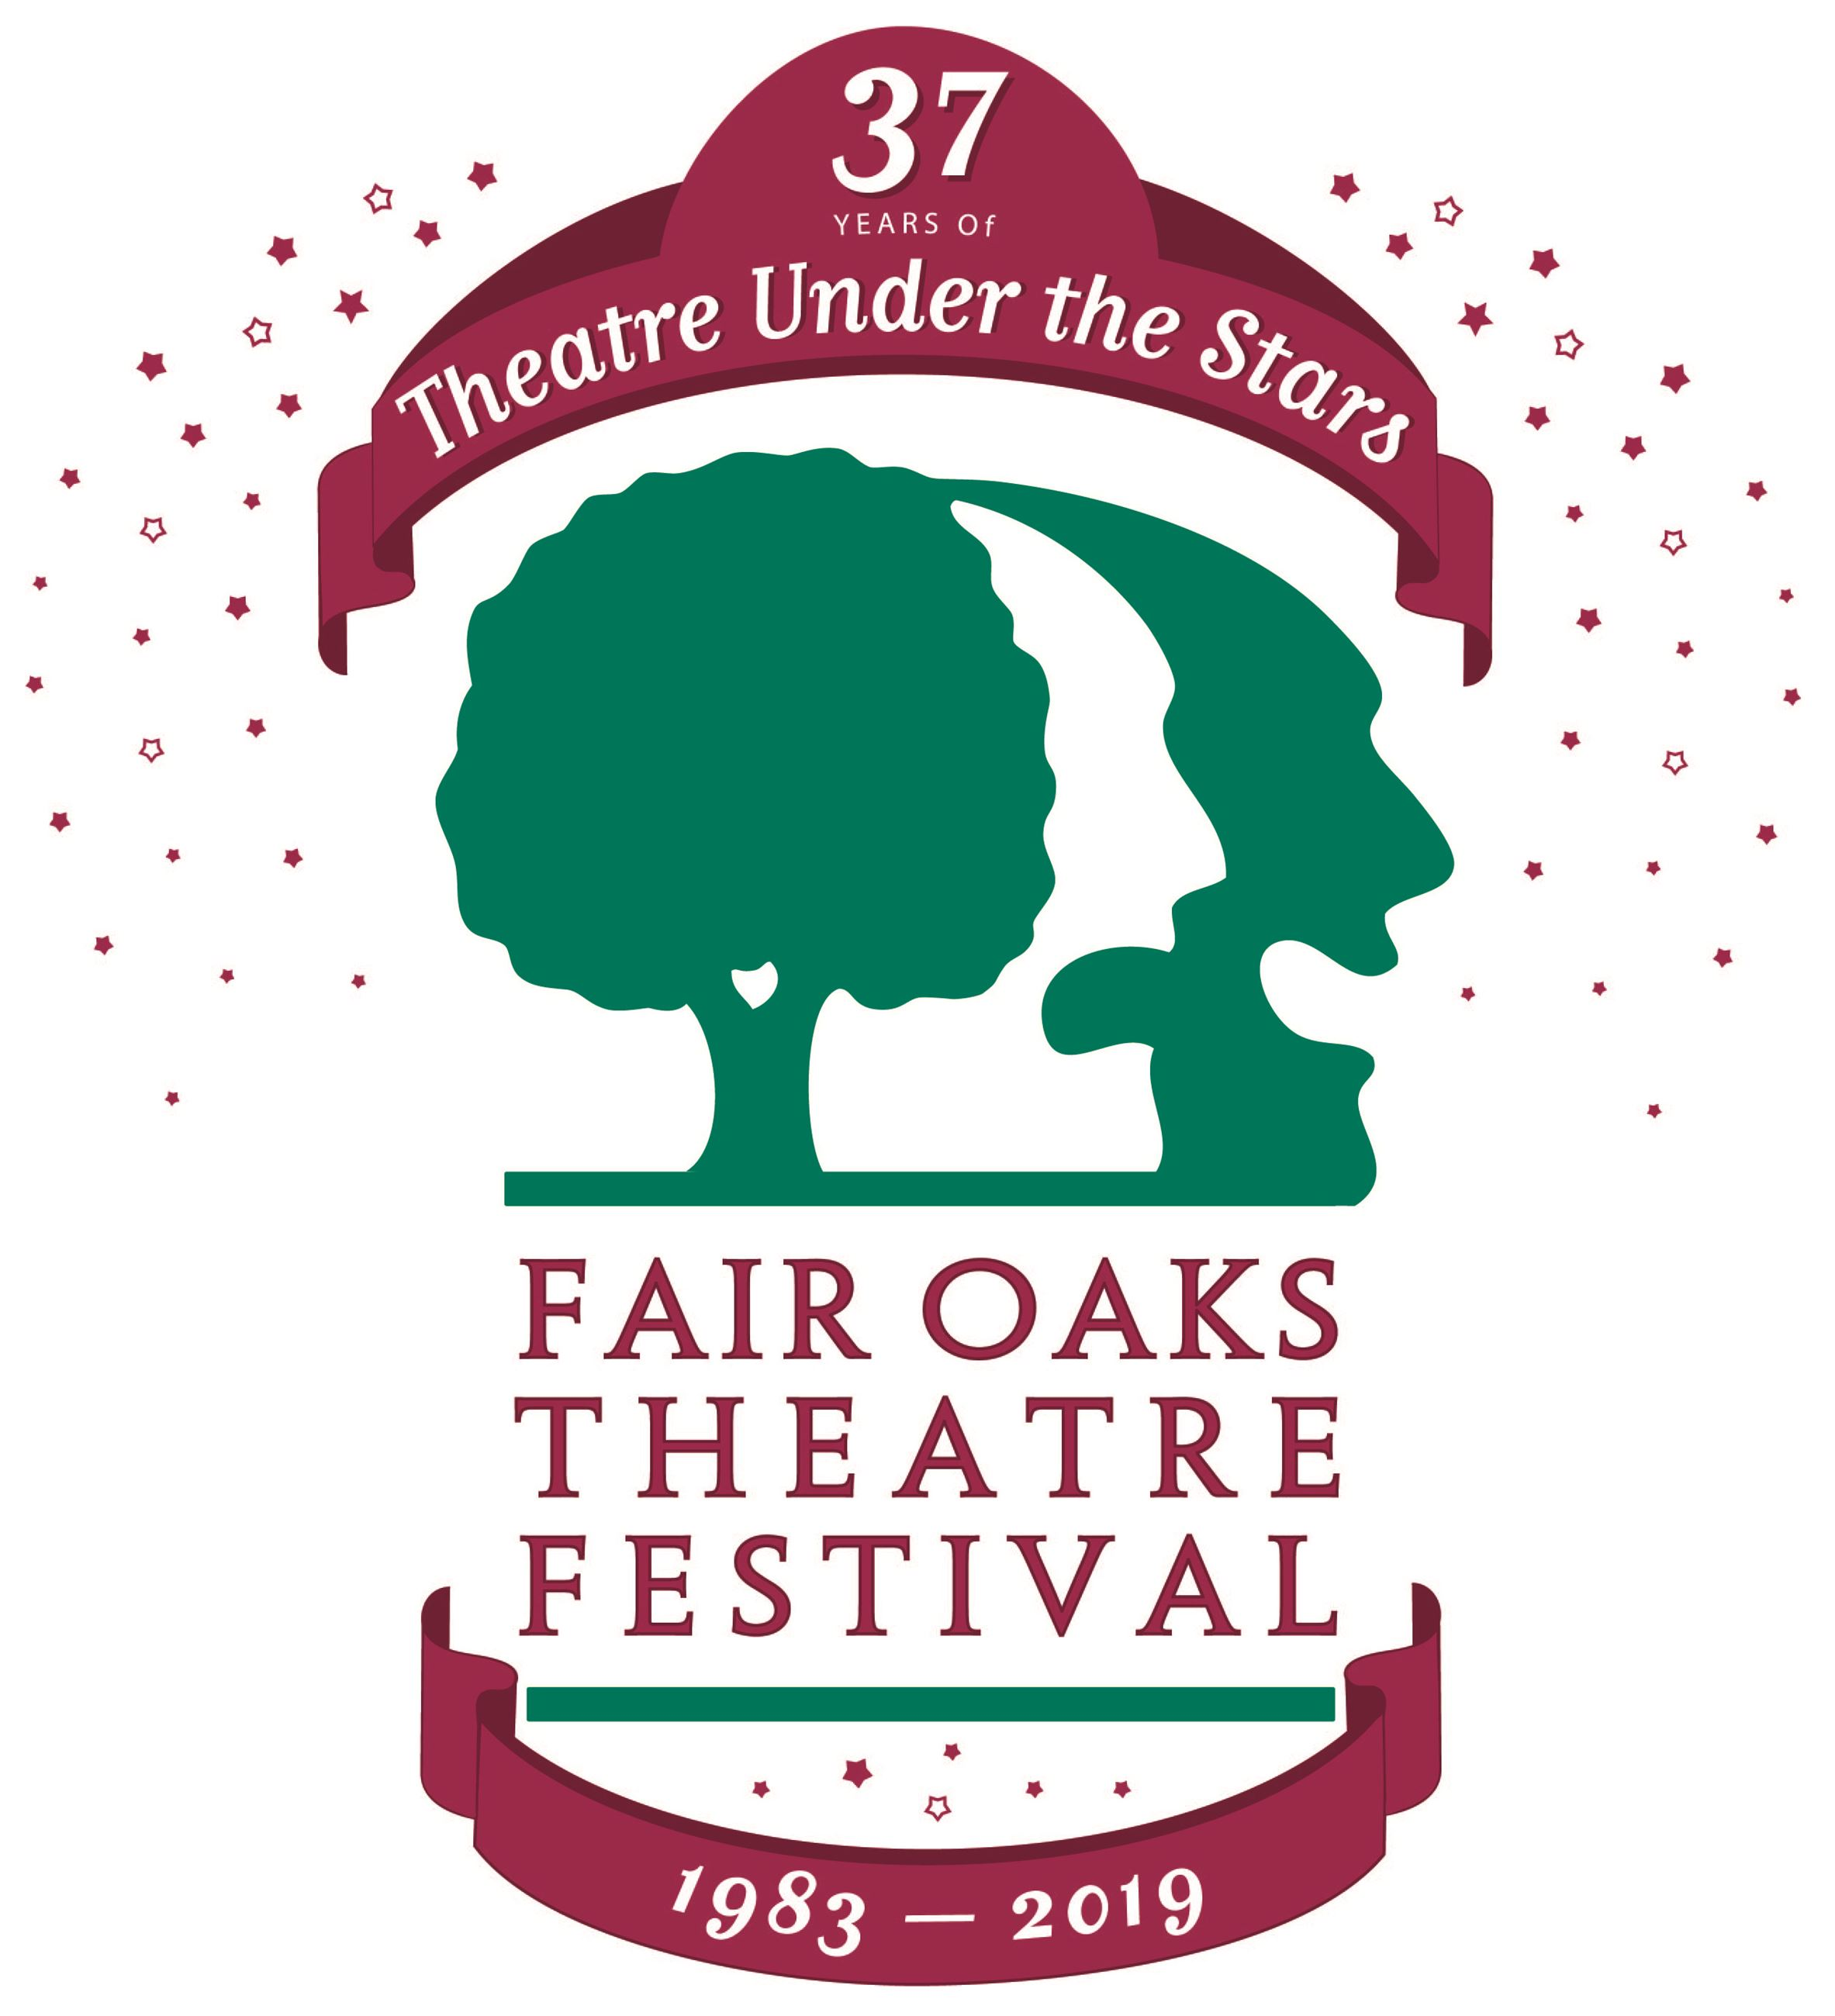 Fair Oaks Theatre Festival logo Opens in new window